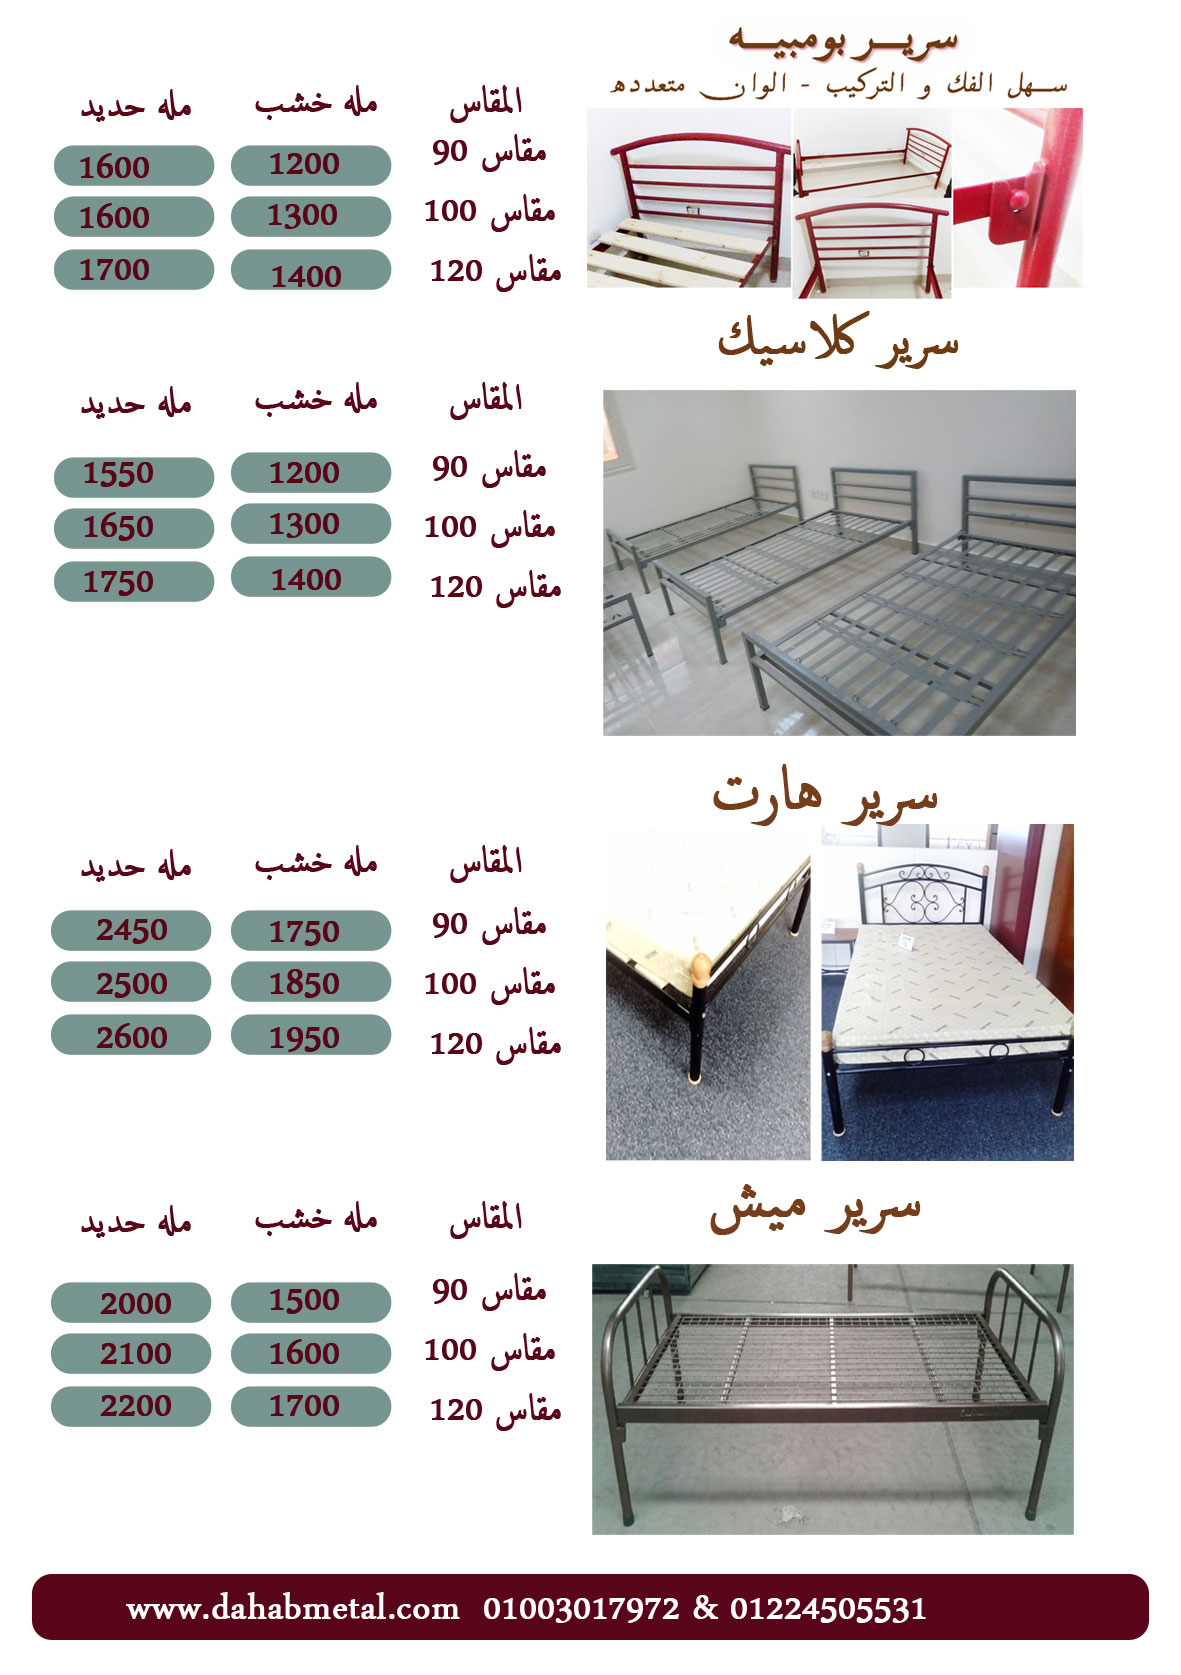 single bed price list dahabmetal